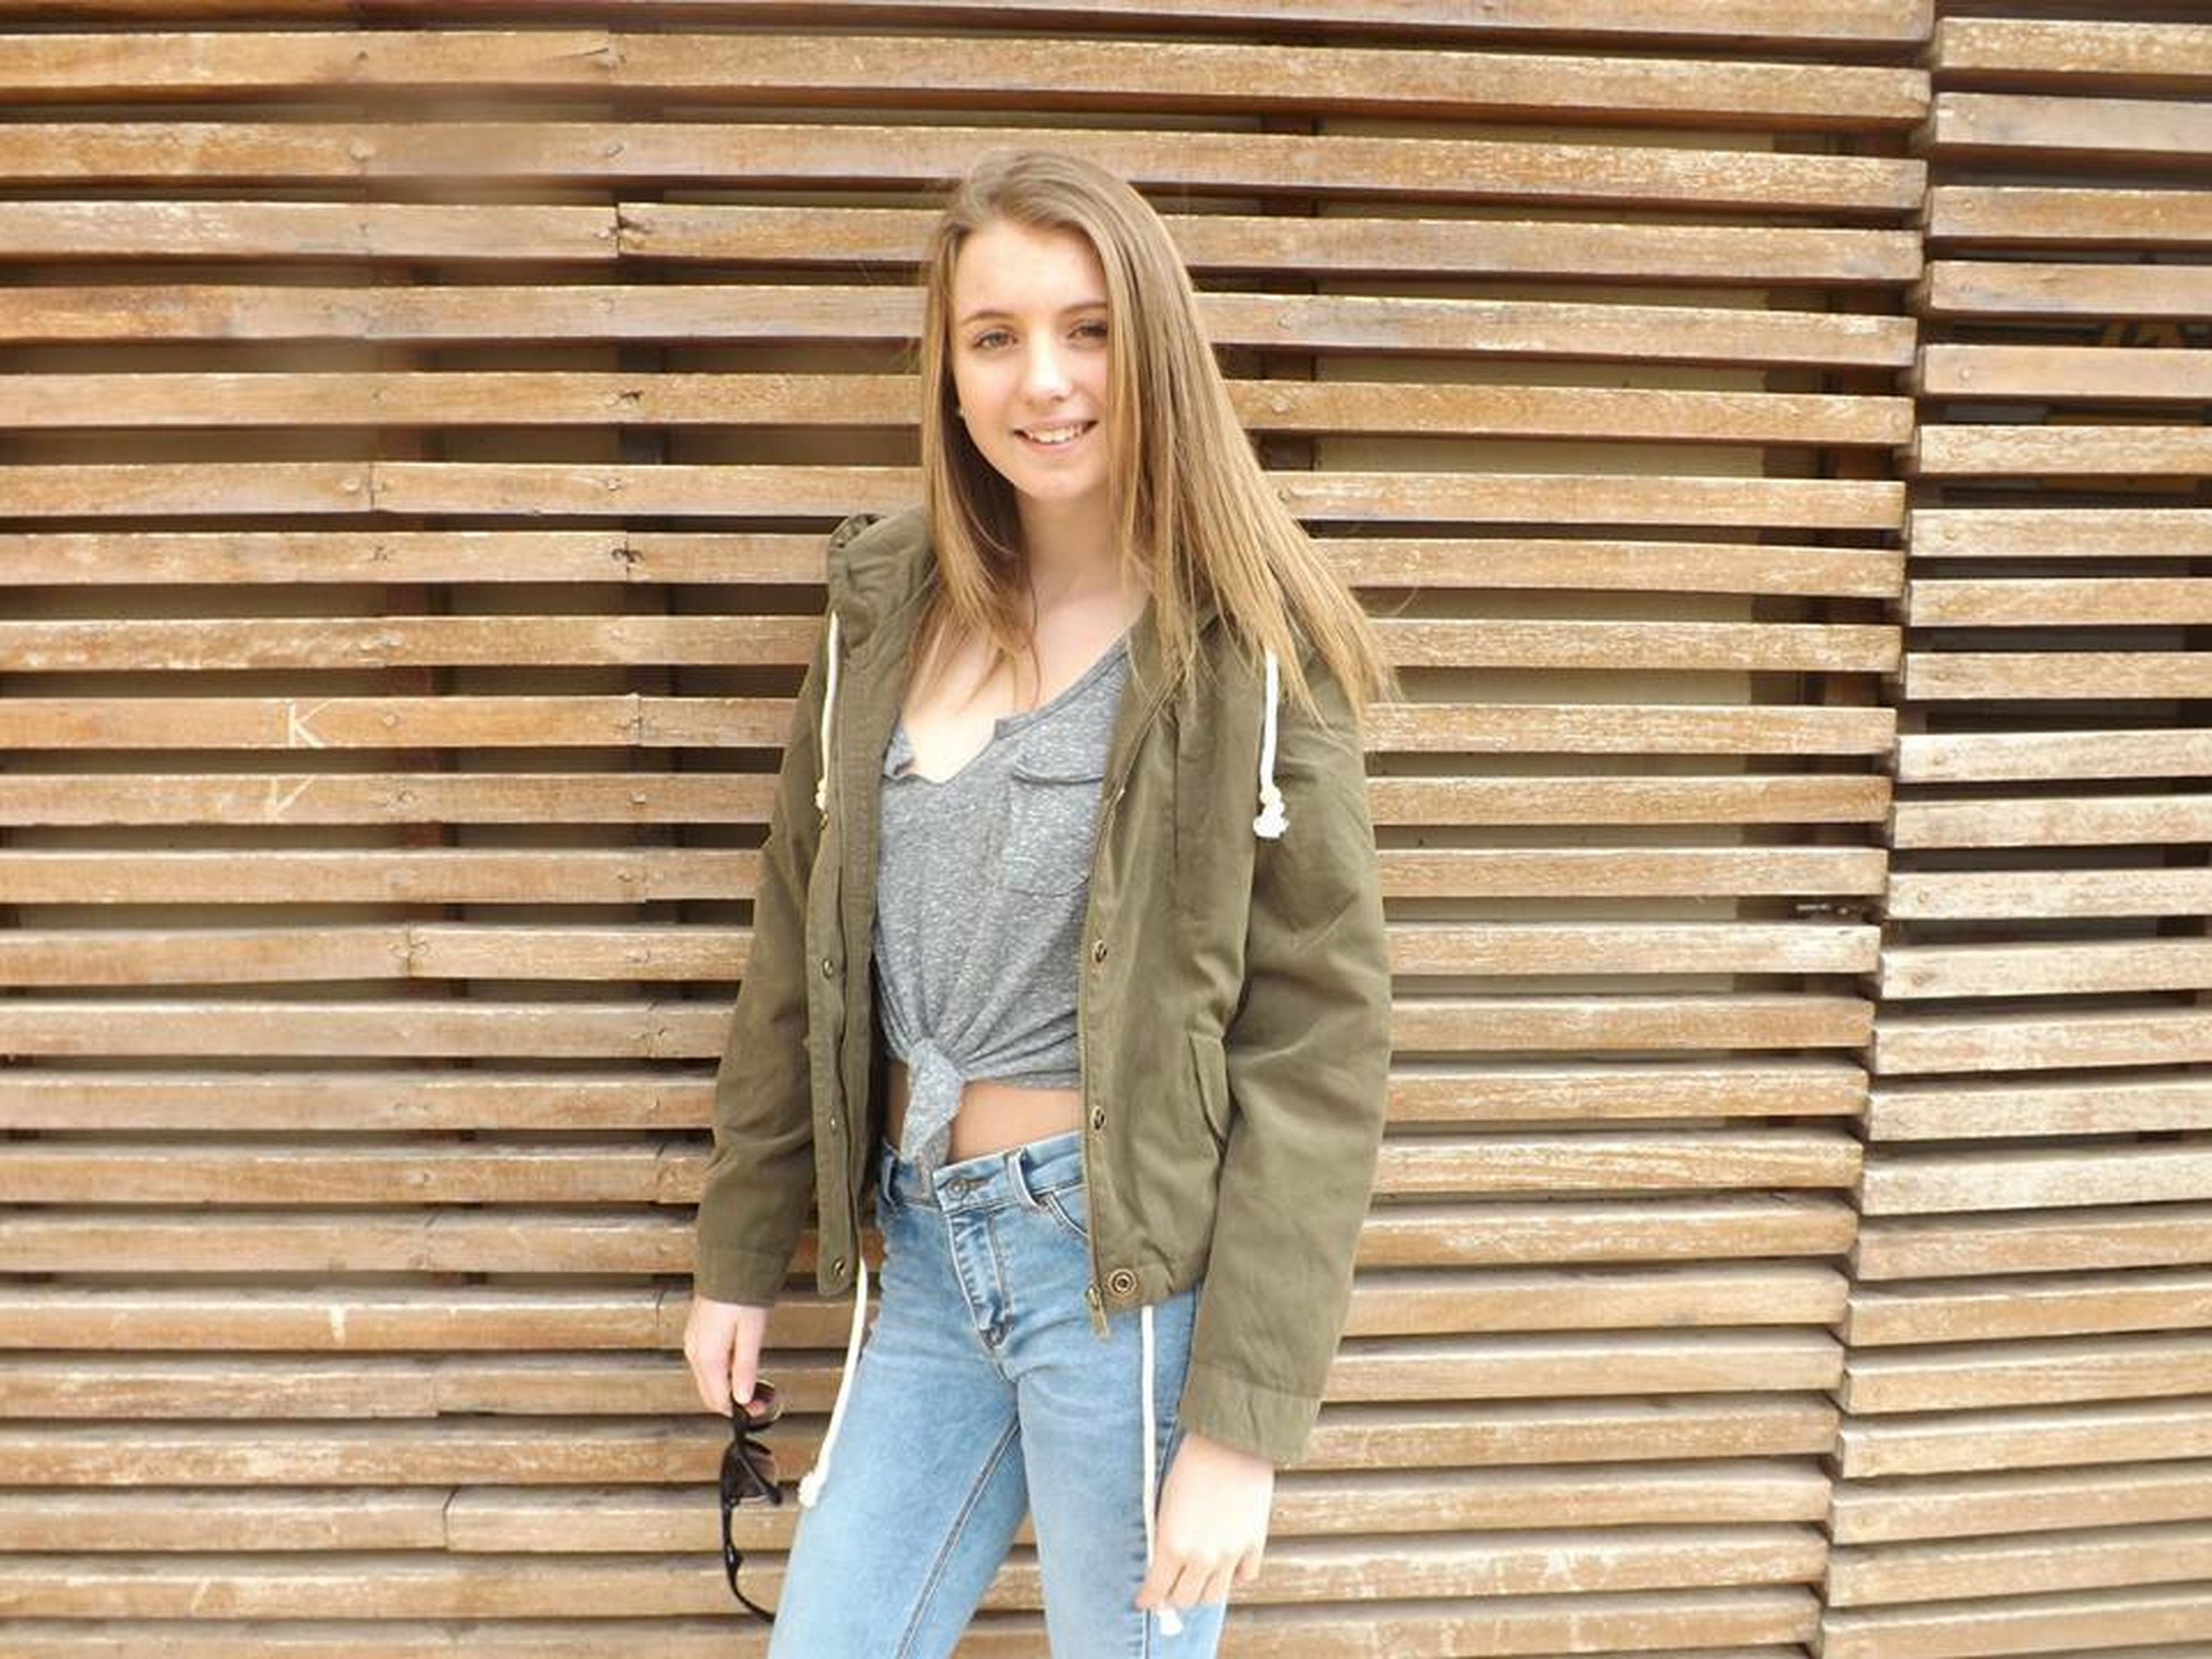 young adult, young women, looking at camera, front view, standing, person, portrait, casual clothing, lifestyles, three quarter length, brick wall, long hair, fashion, leisure activity, wall - building feature, fashionable